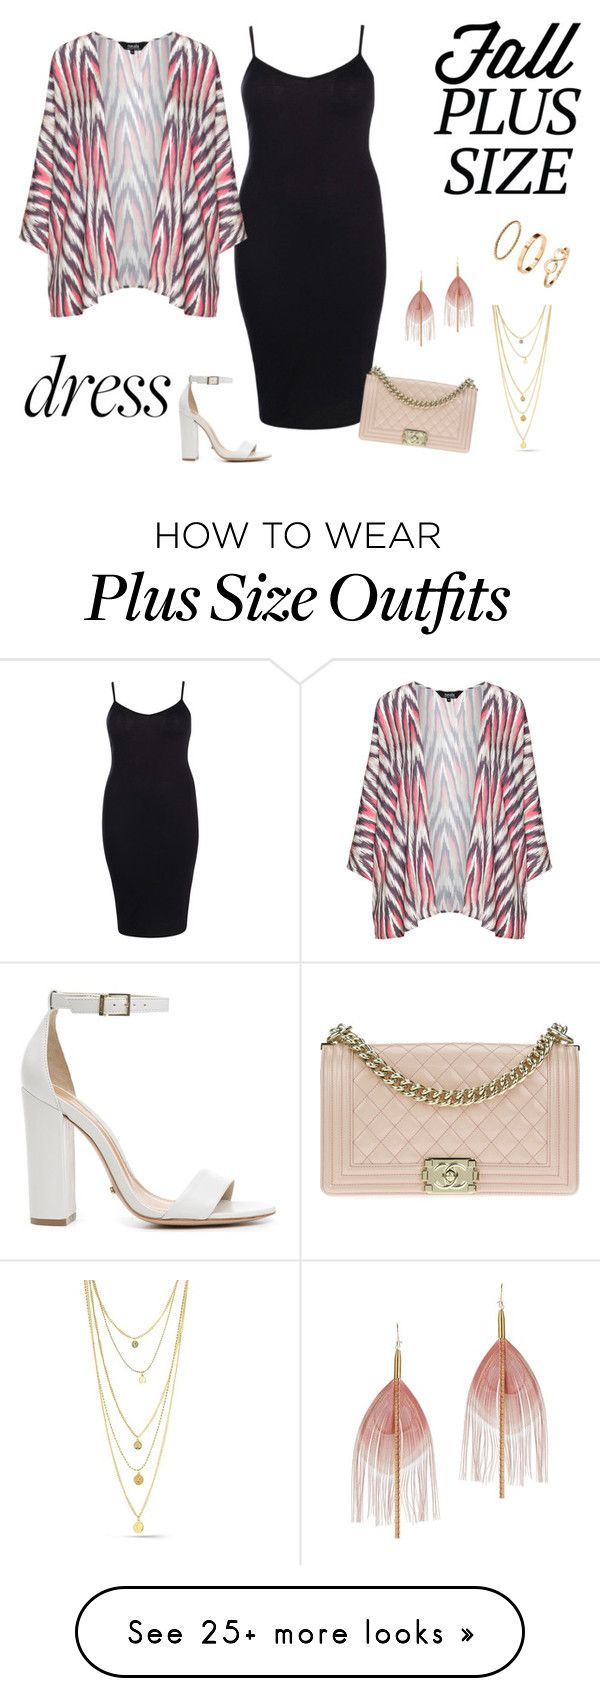 """""""Plus size Fall Dresses"""" by shosho-mahmmod on Polyvore featuring Schutz, Boohoo, navabi, Chanel, Serefina, H&M, Fall, dresses and plussize"""